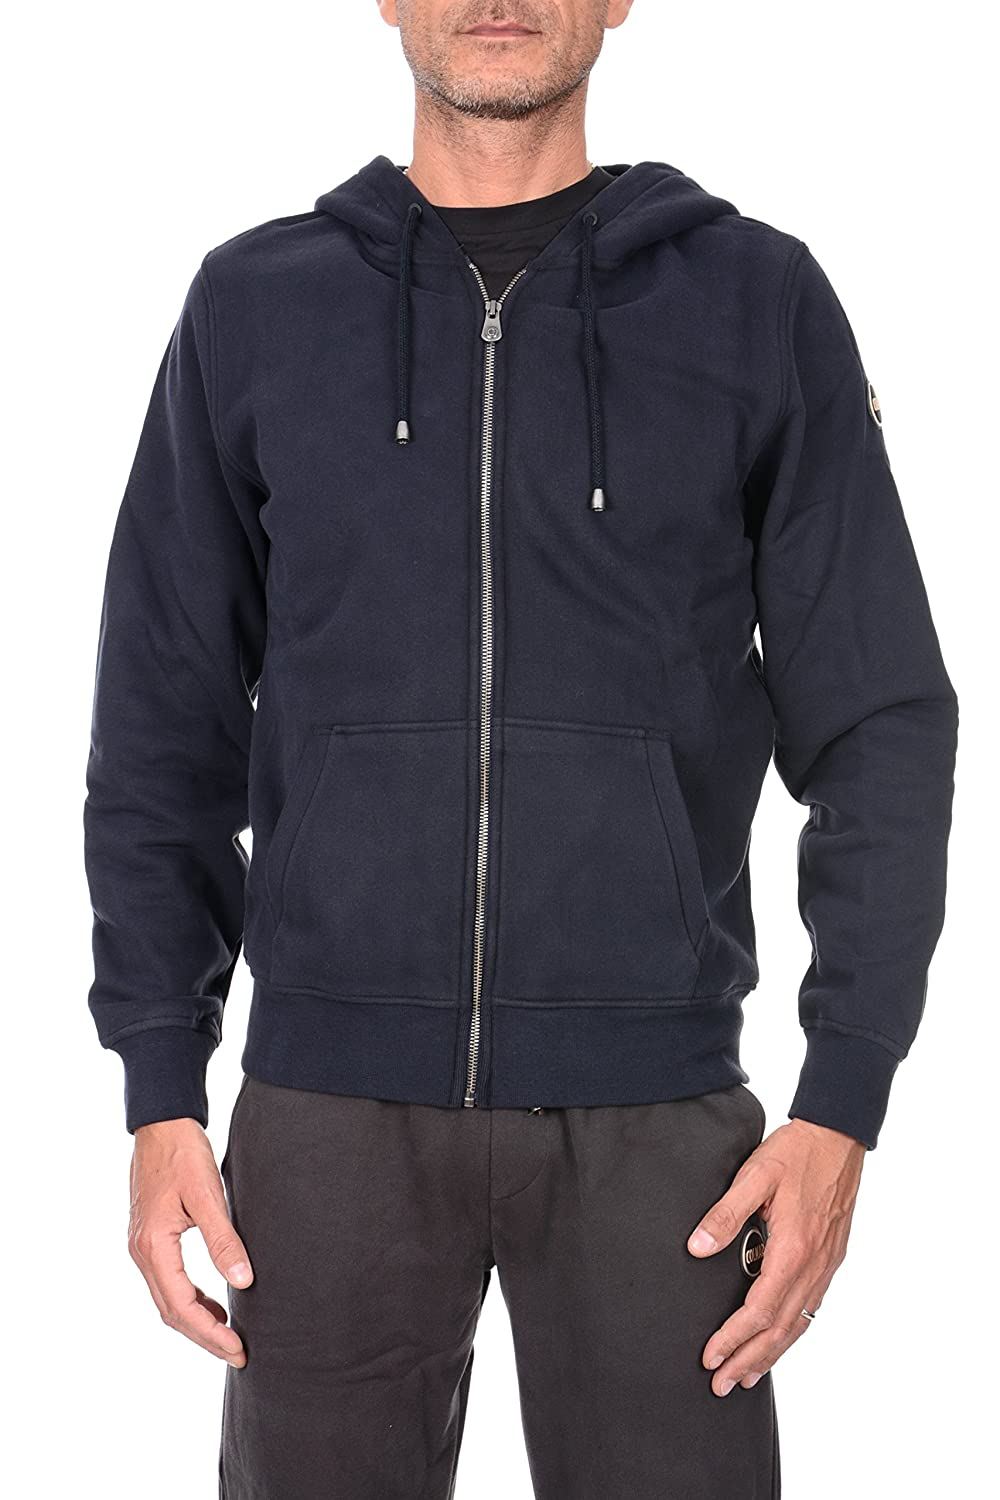 M FELPA FULL ZIP CAPP - 91578 - 5